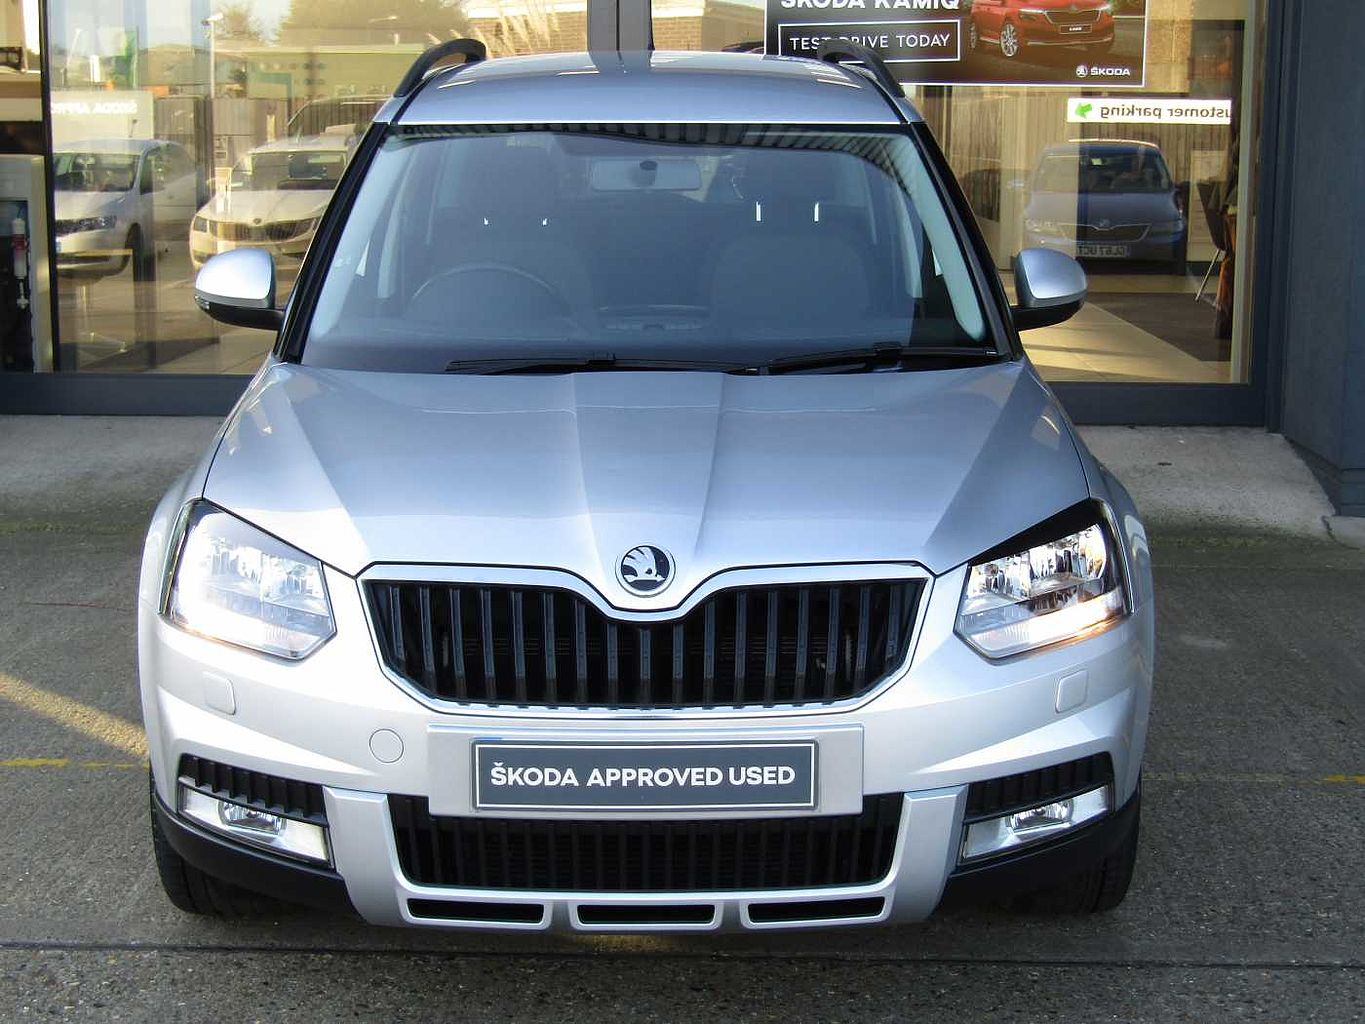 SKODA Yeti 1.2 TSI (110PS ) SE Outdoor 5-Dr